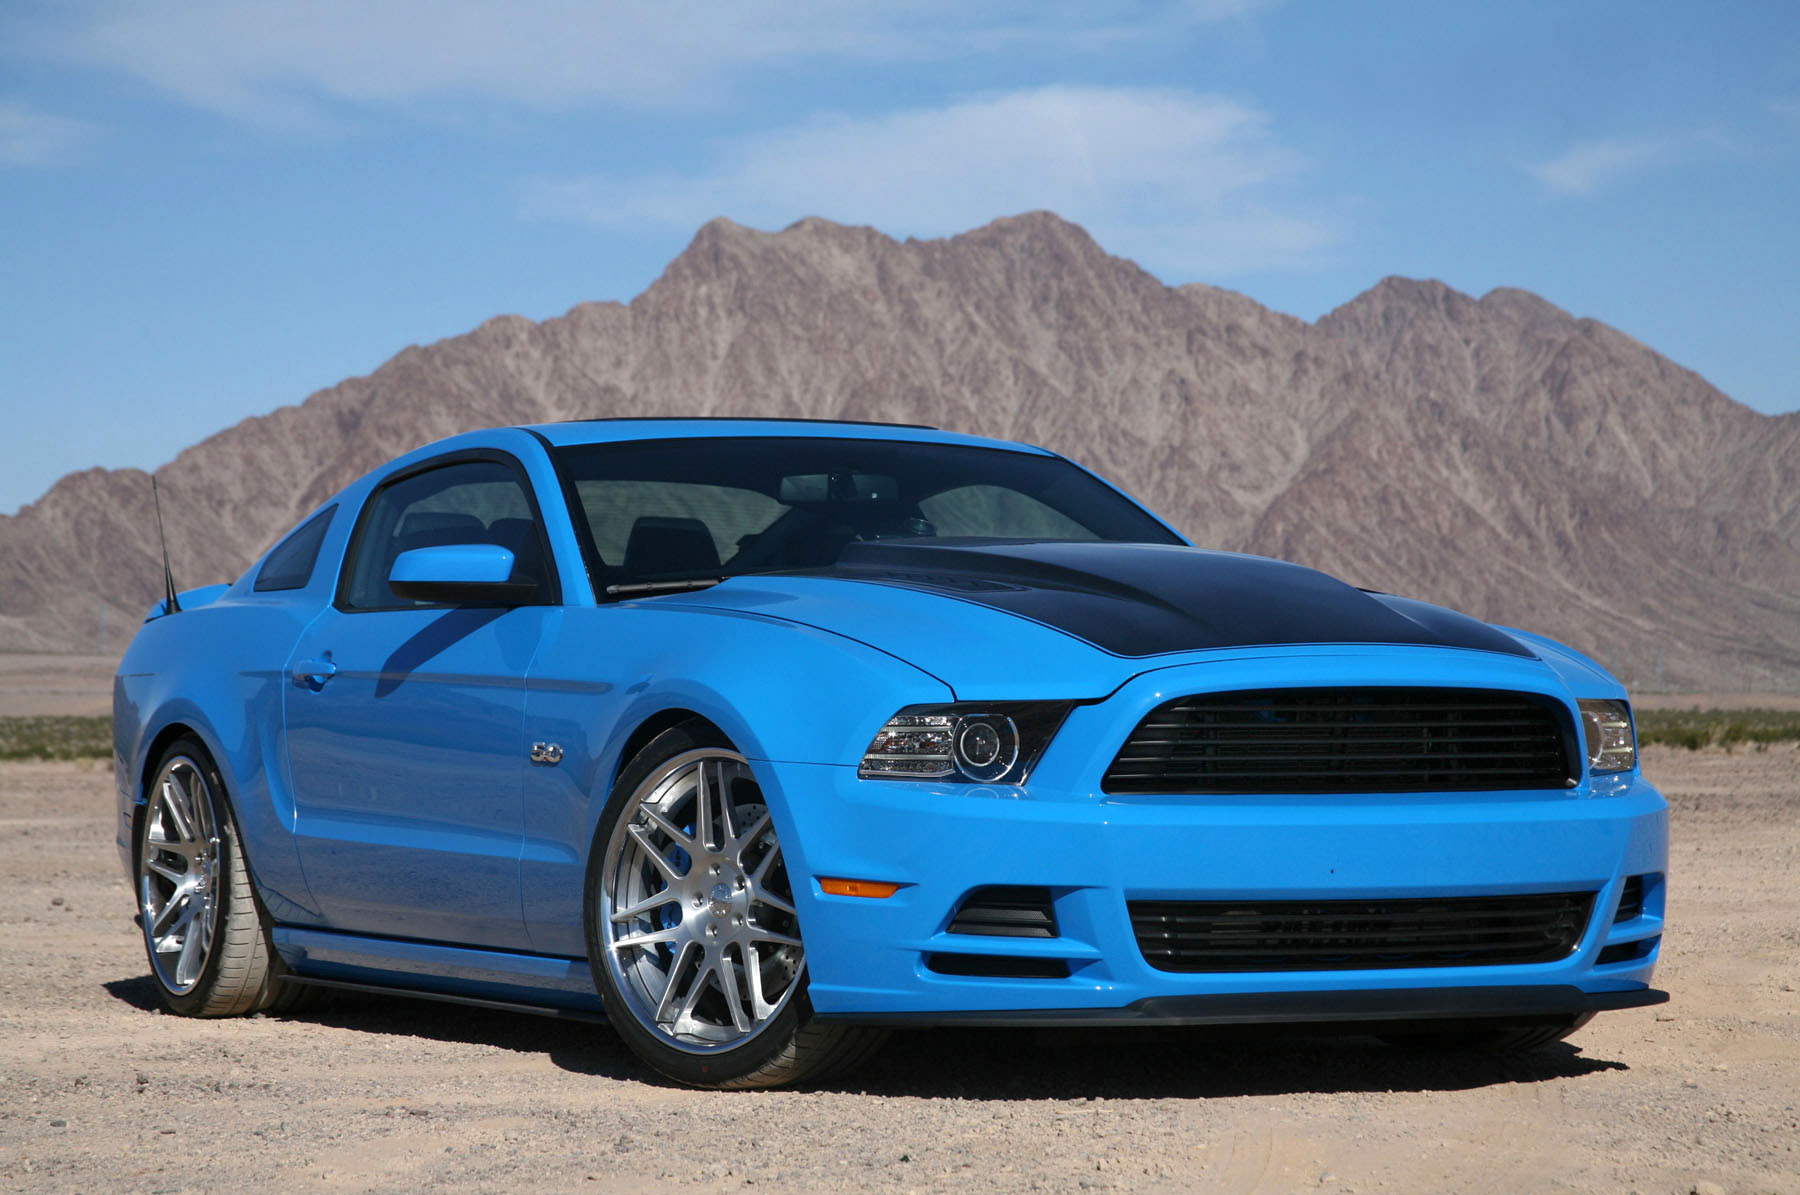 2014 Ford Mustang #8